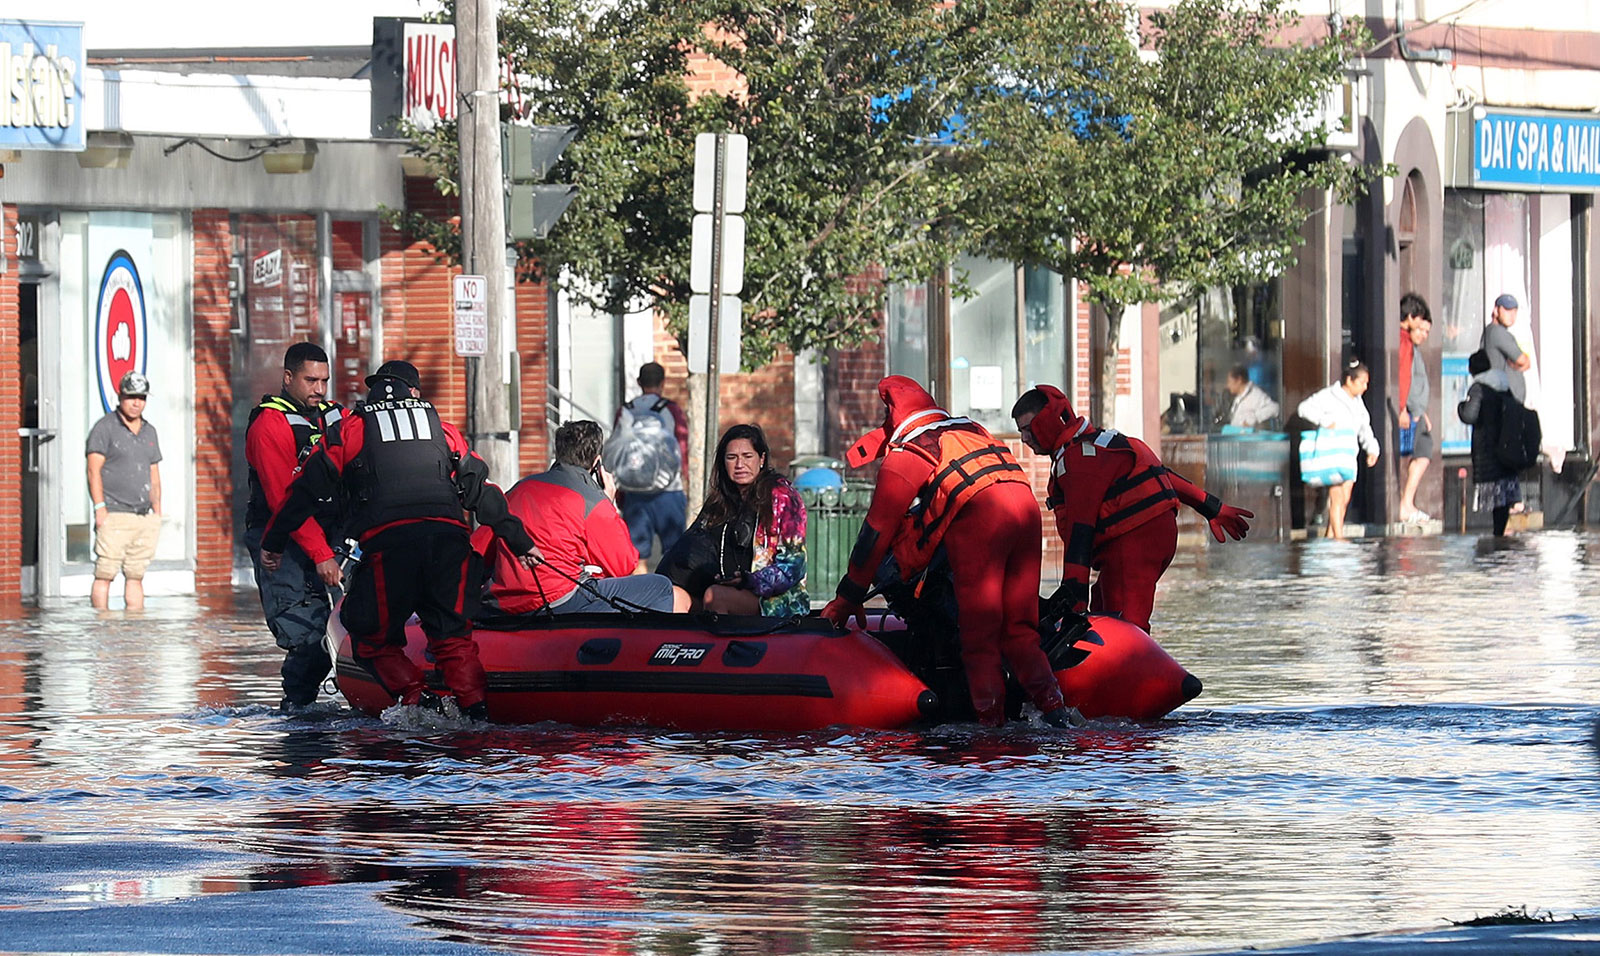 First responders pull residents in a boat as they rescue people trapped by floodwaters in Mamaroneck, New York, on September 2.